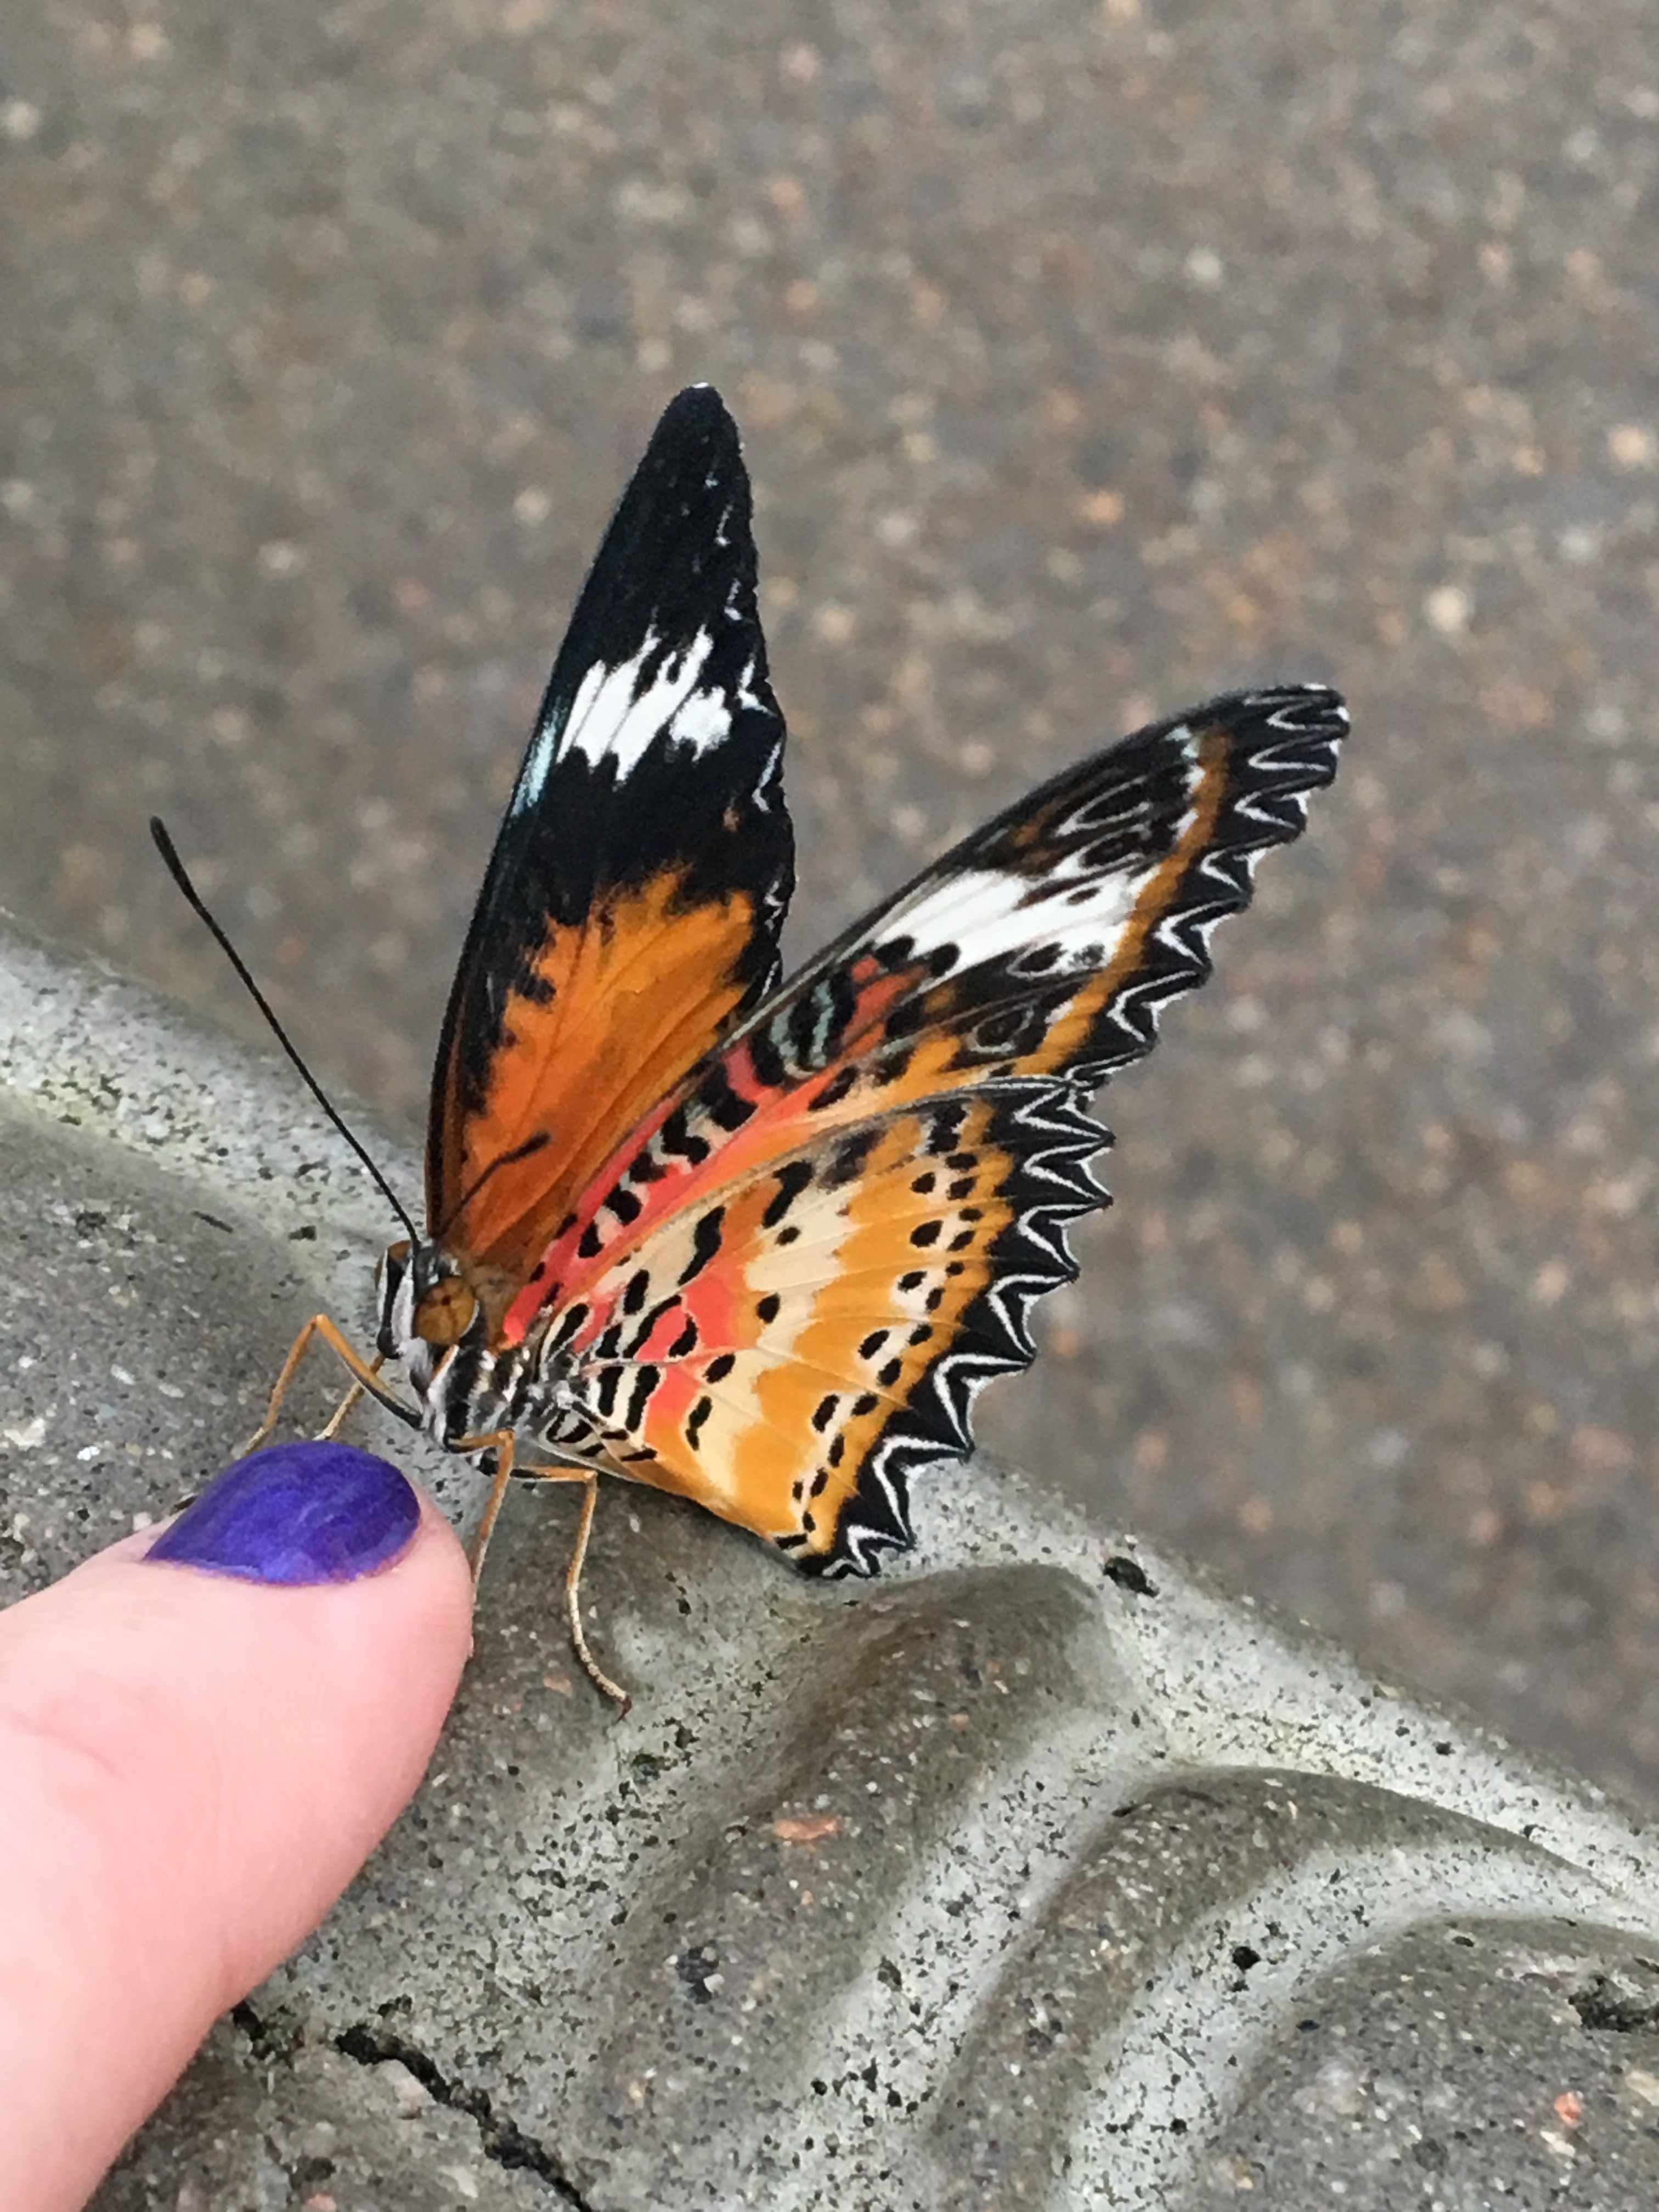 A close up of a butterfly